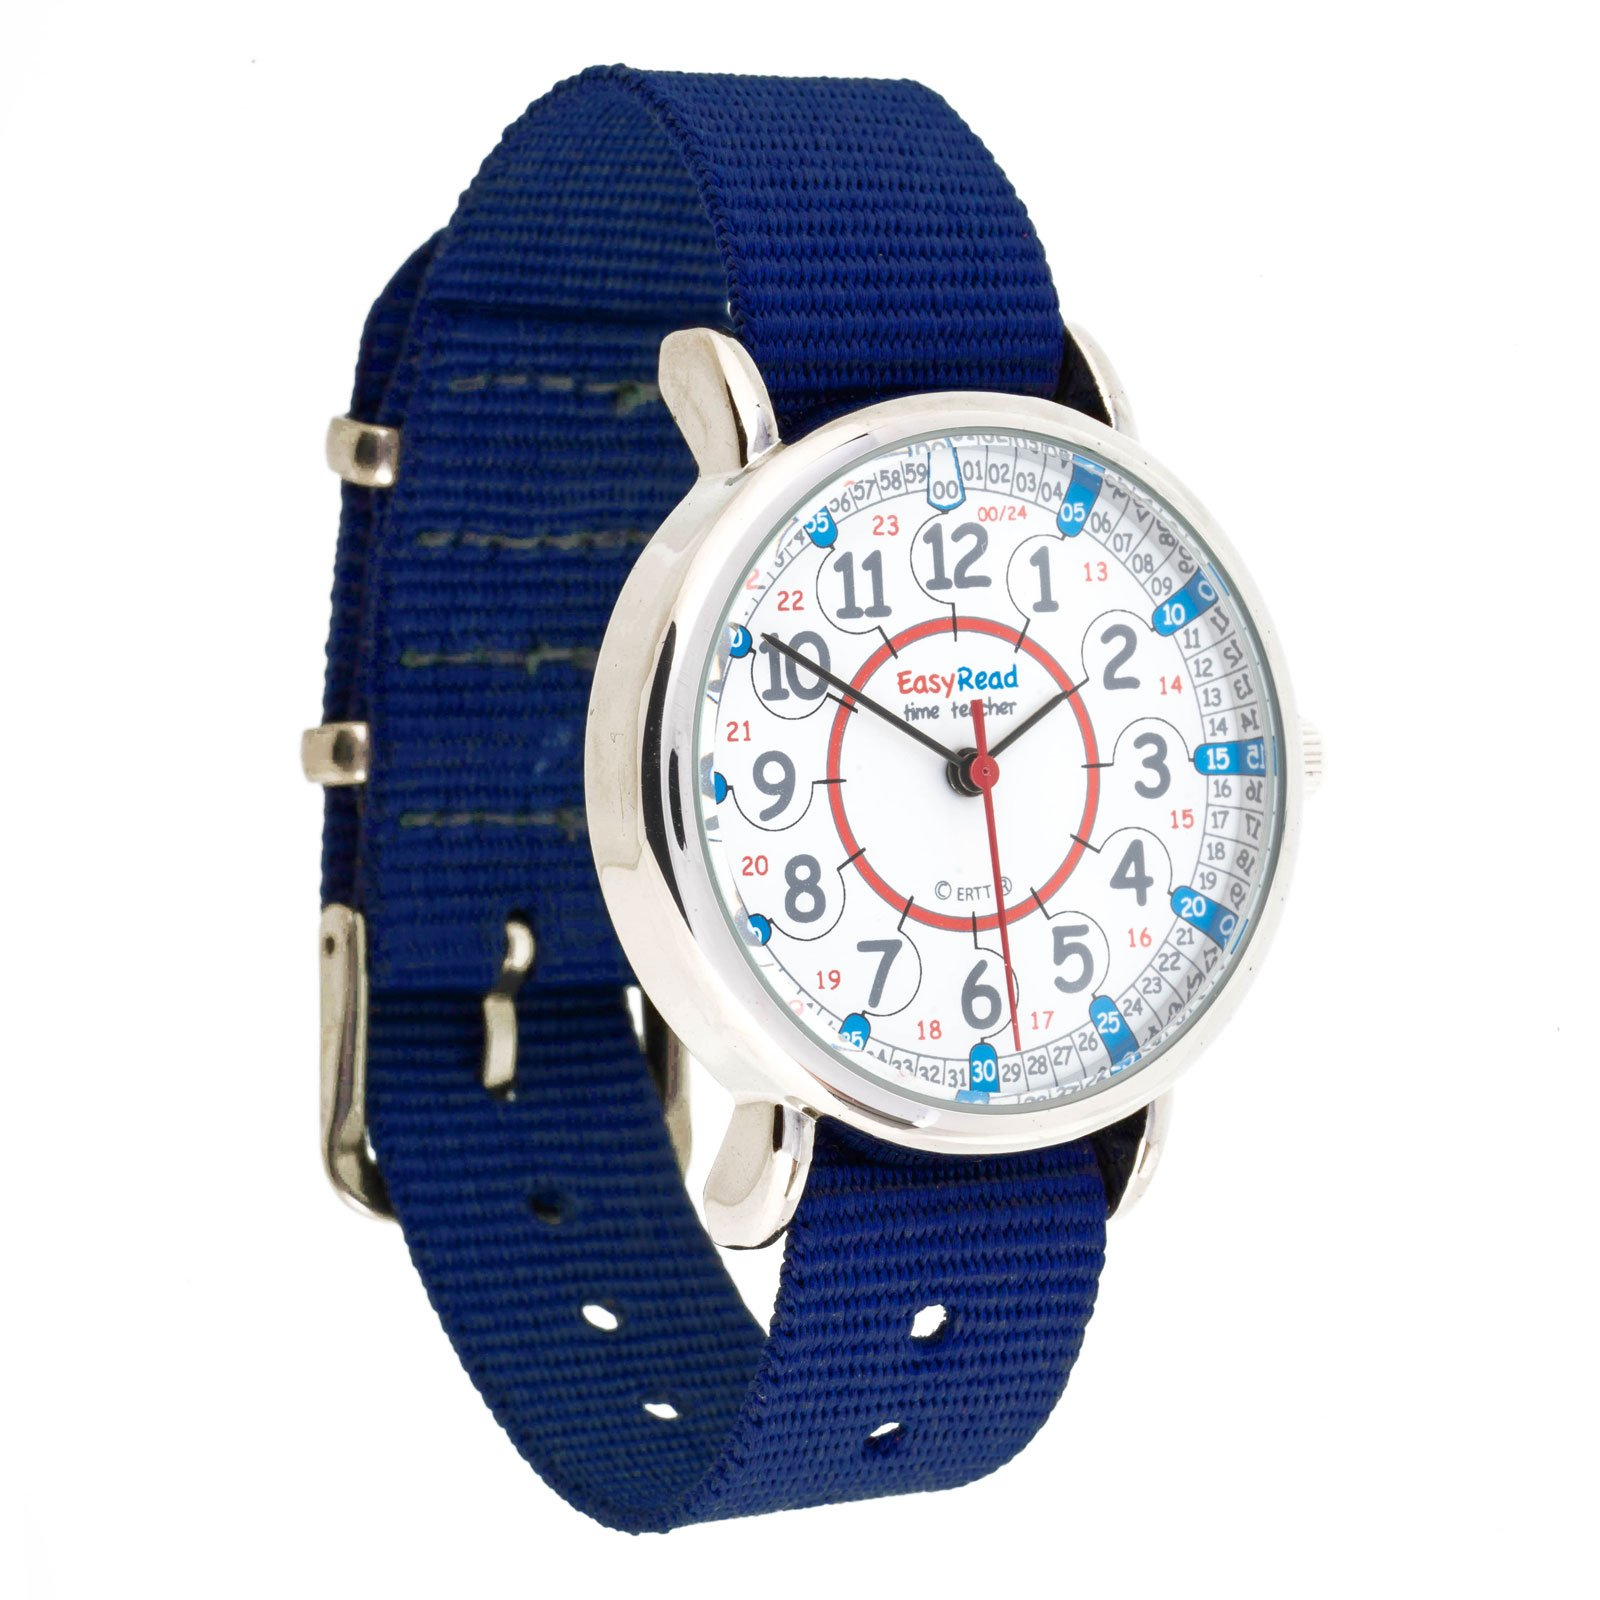 EasyRead Time Teacher Children's Watch, 12 & 24 Hour Time, Red Blue Grey Face/Navy Blue Strap by EasyRead Time Teacher